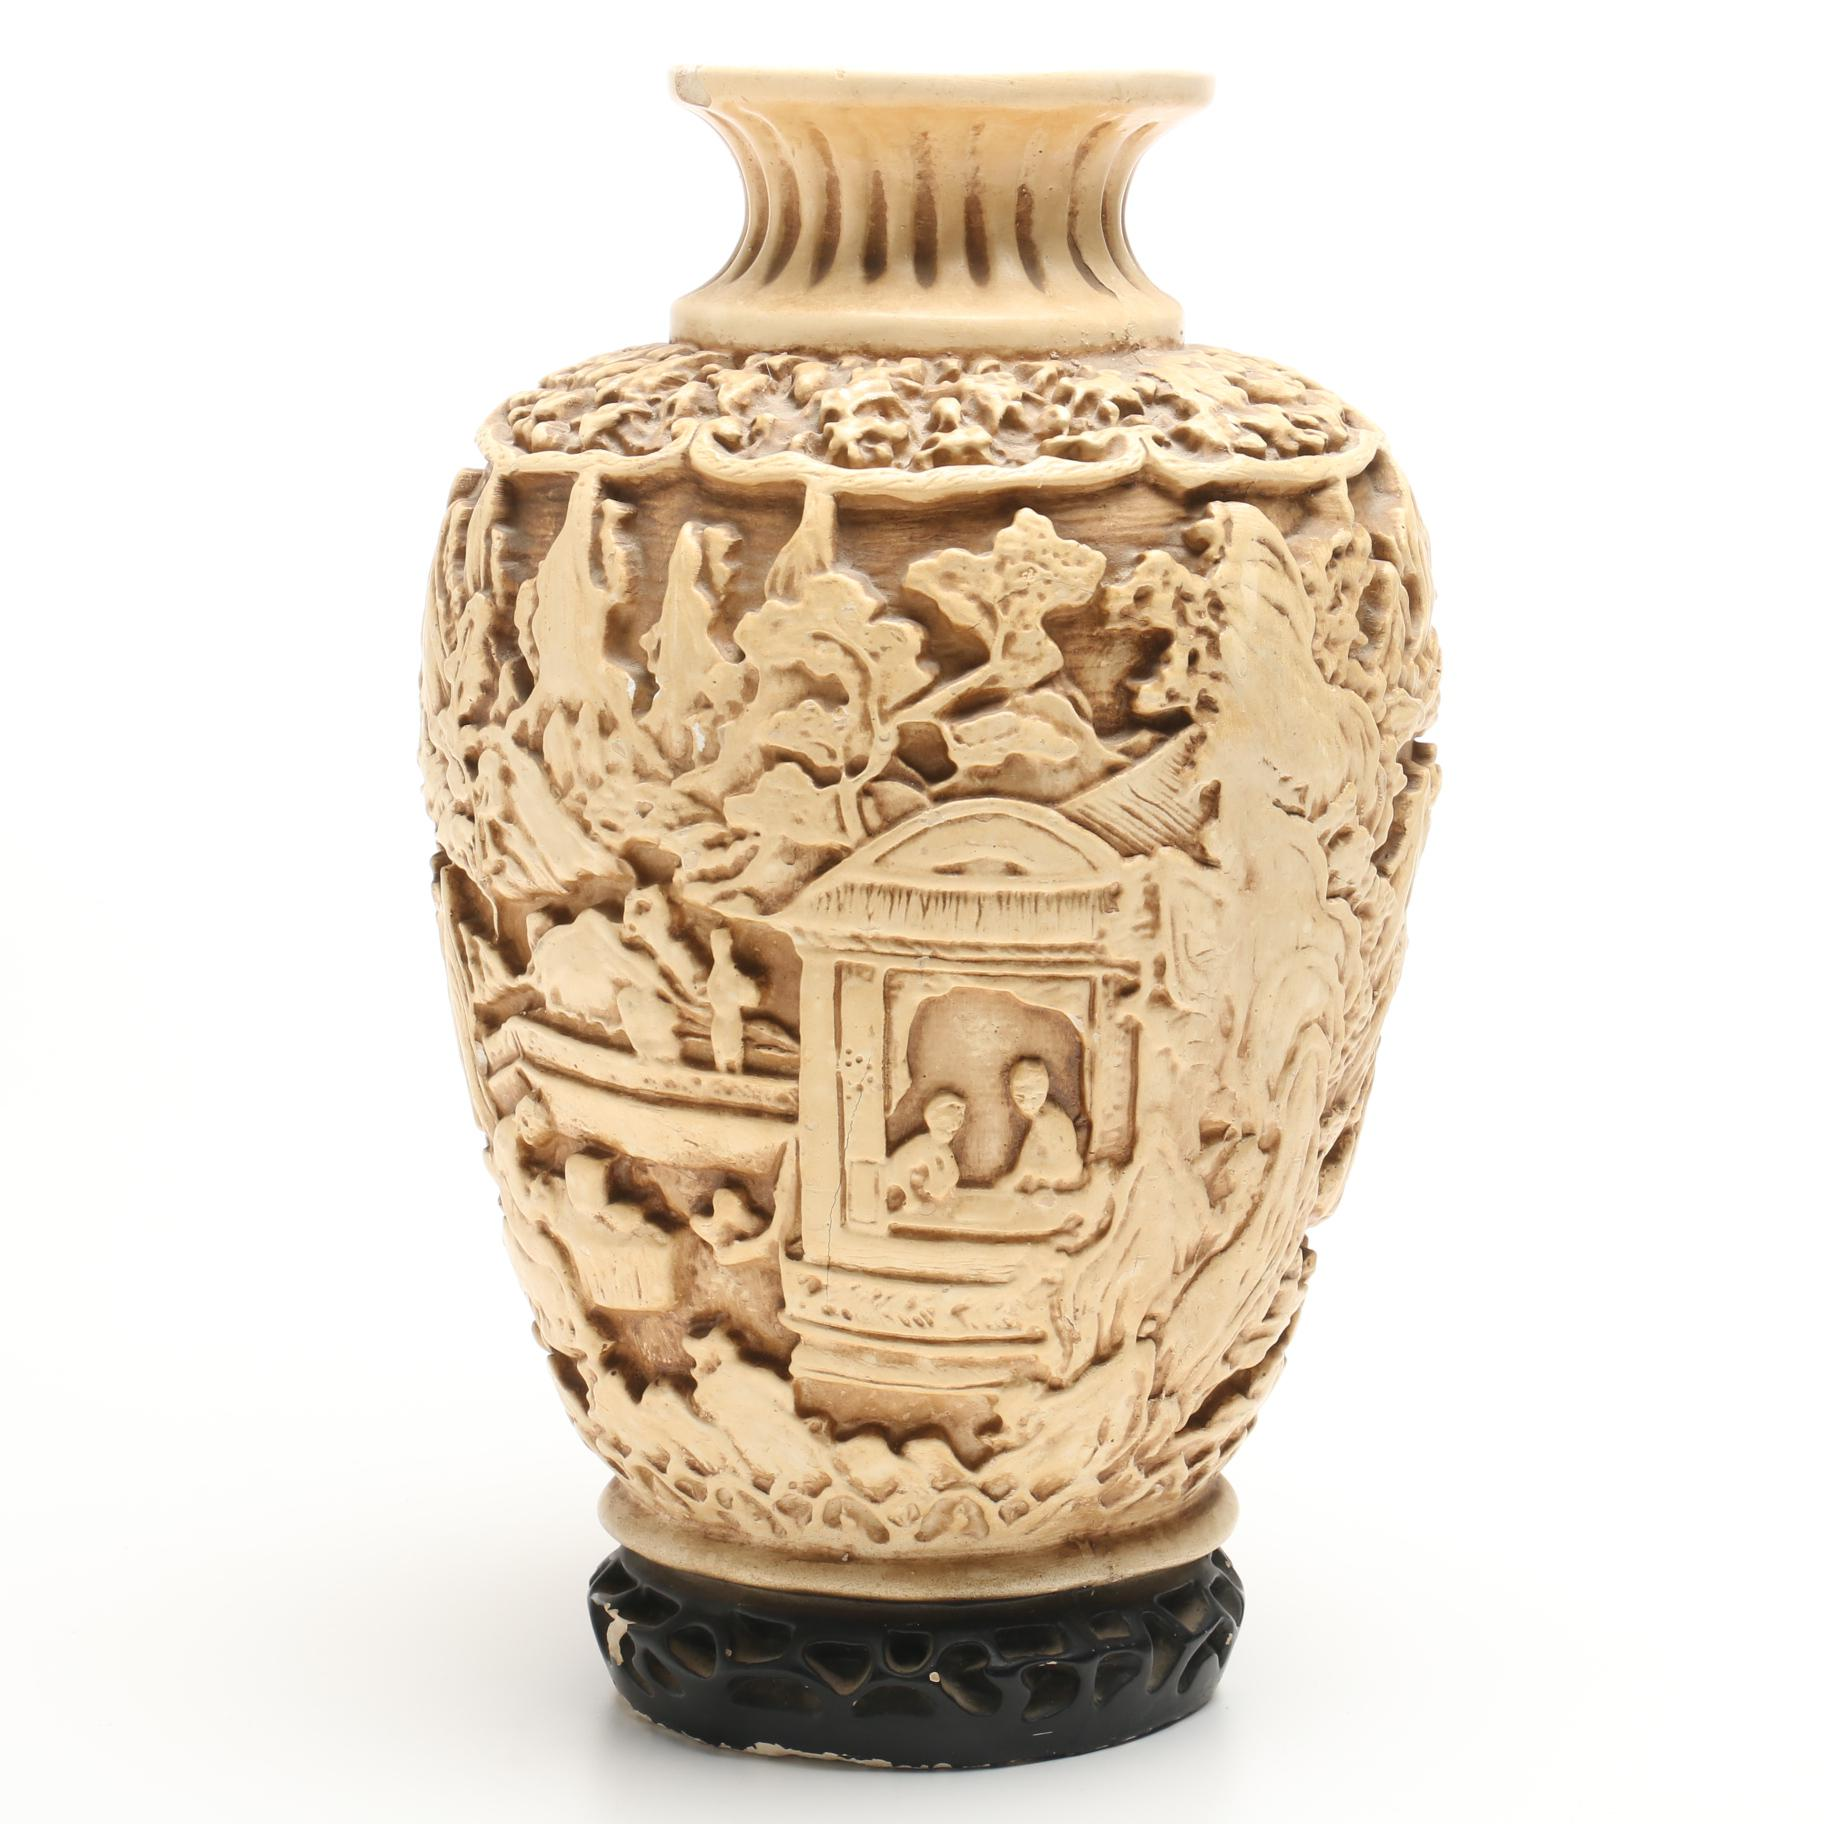 Chinese decorative plaster vase featuring bas relief carving ebth